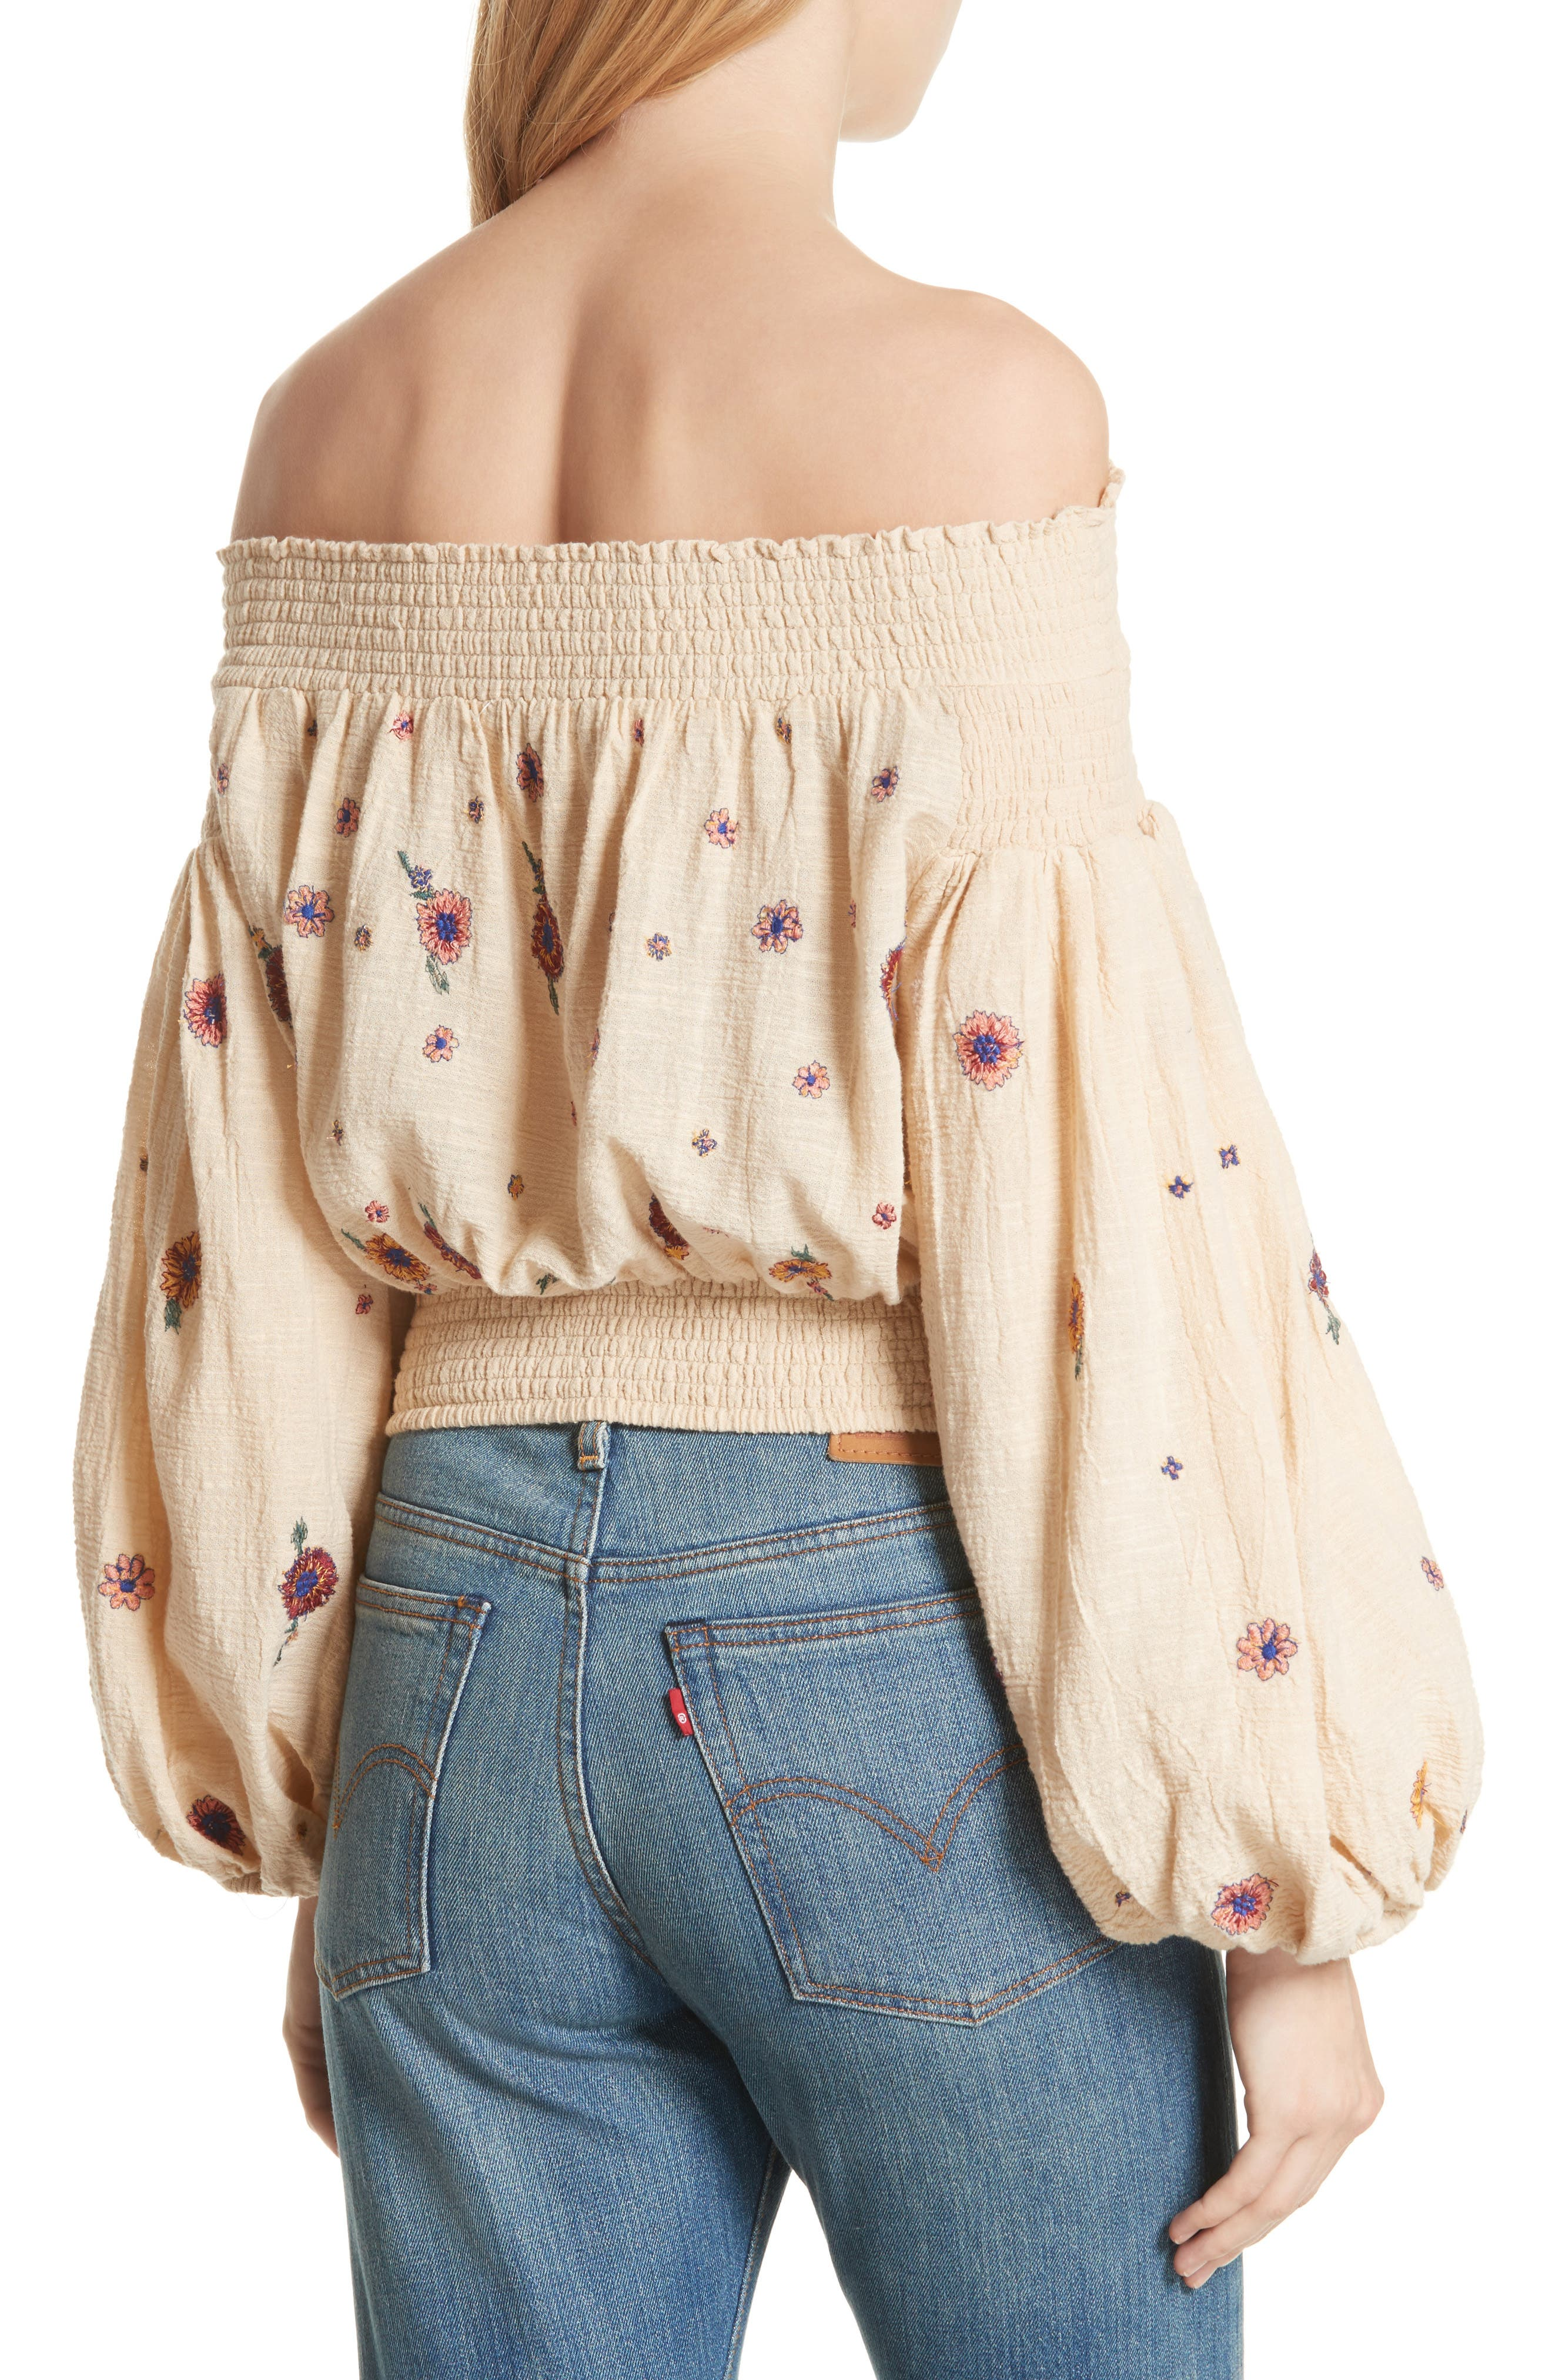 Saachi Smocked Off the Shoulder Top,                             Alternate thumbnail 3, color,                             Neutral